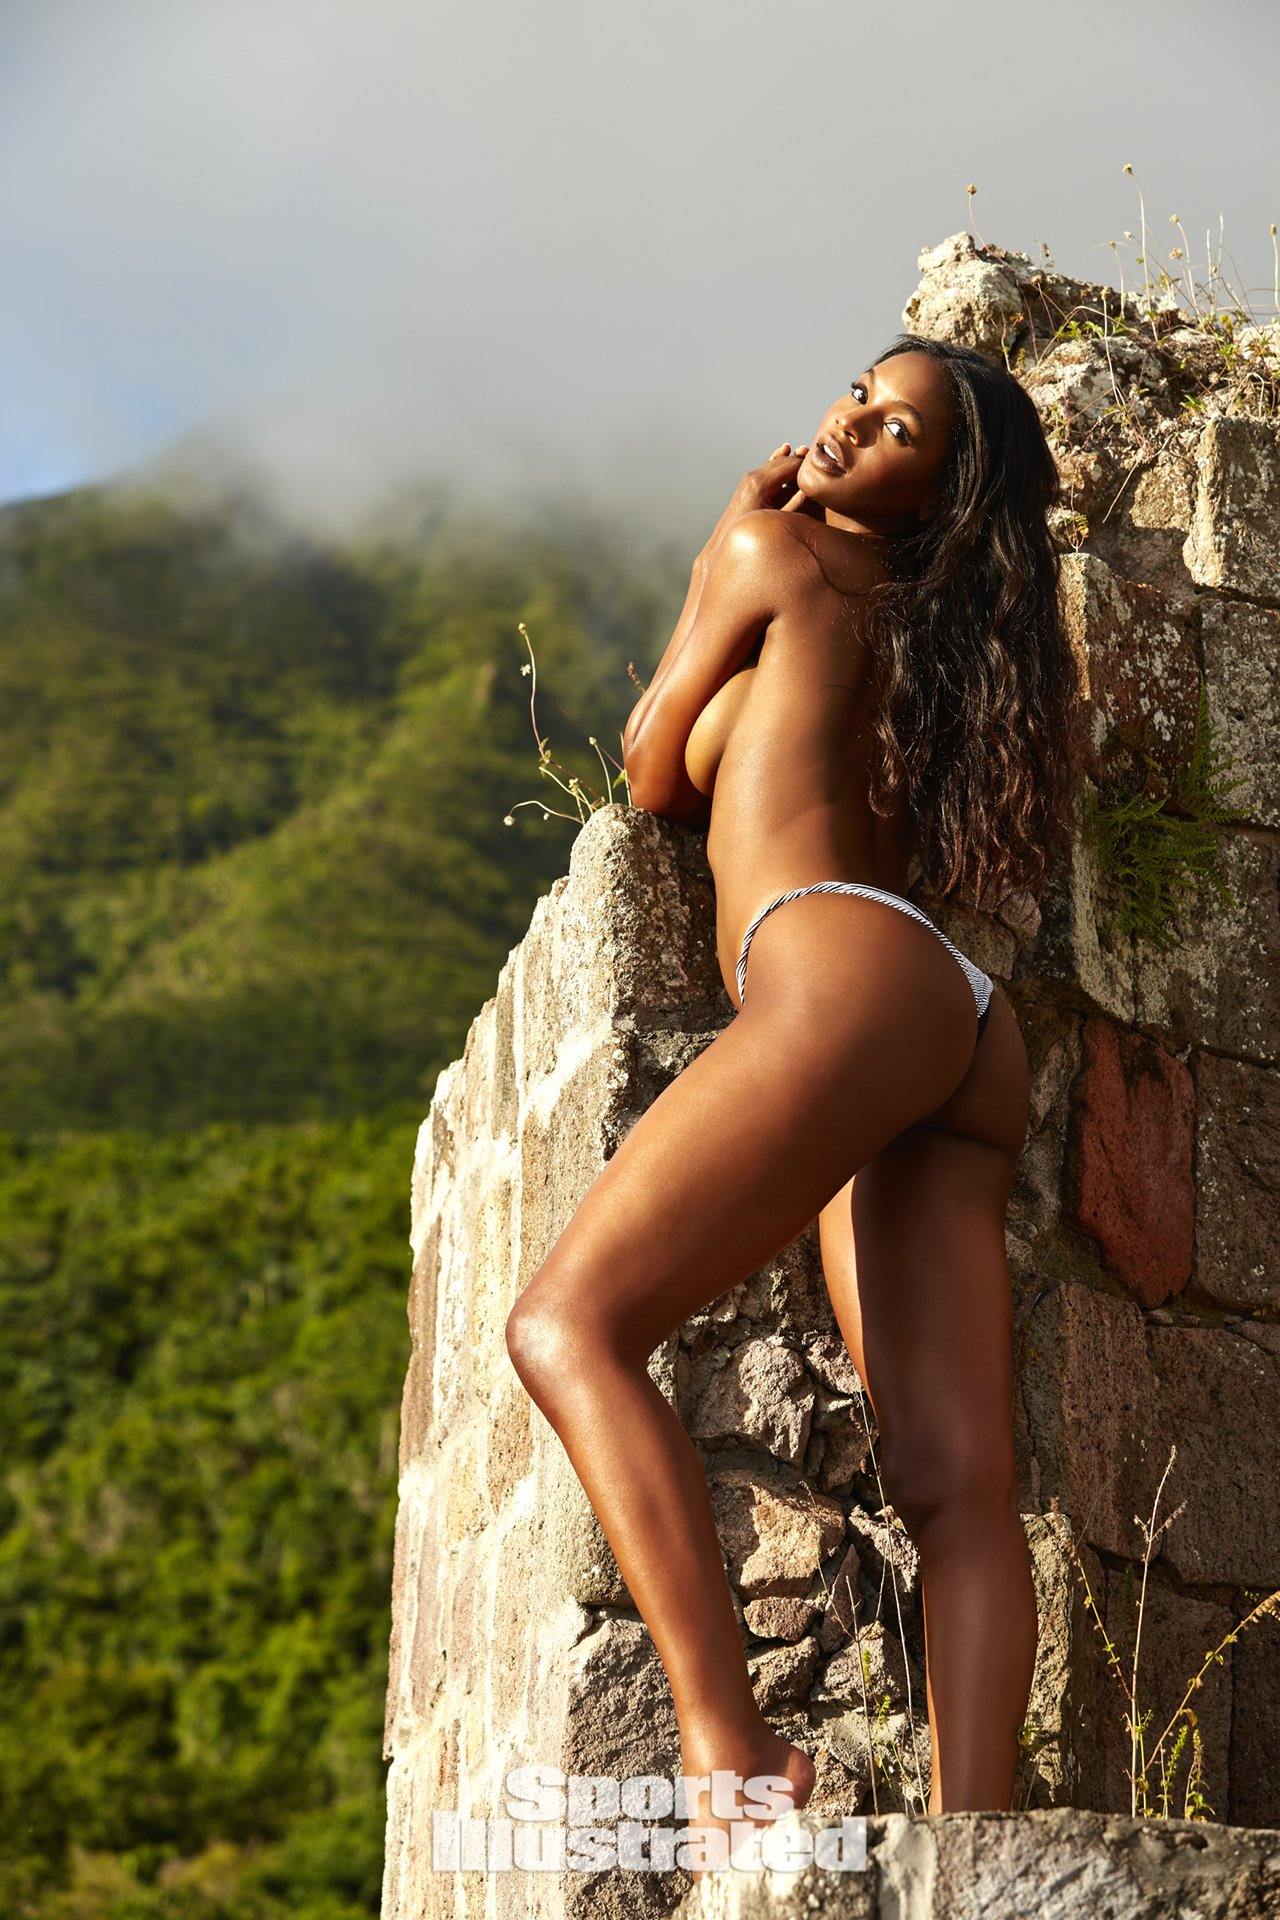 Sports Illustrated Swimsuit Issue 2018 (27).jpg